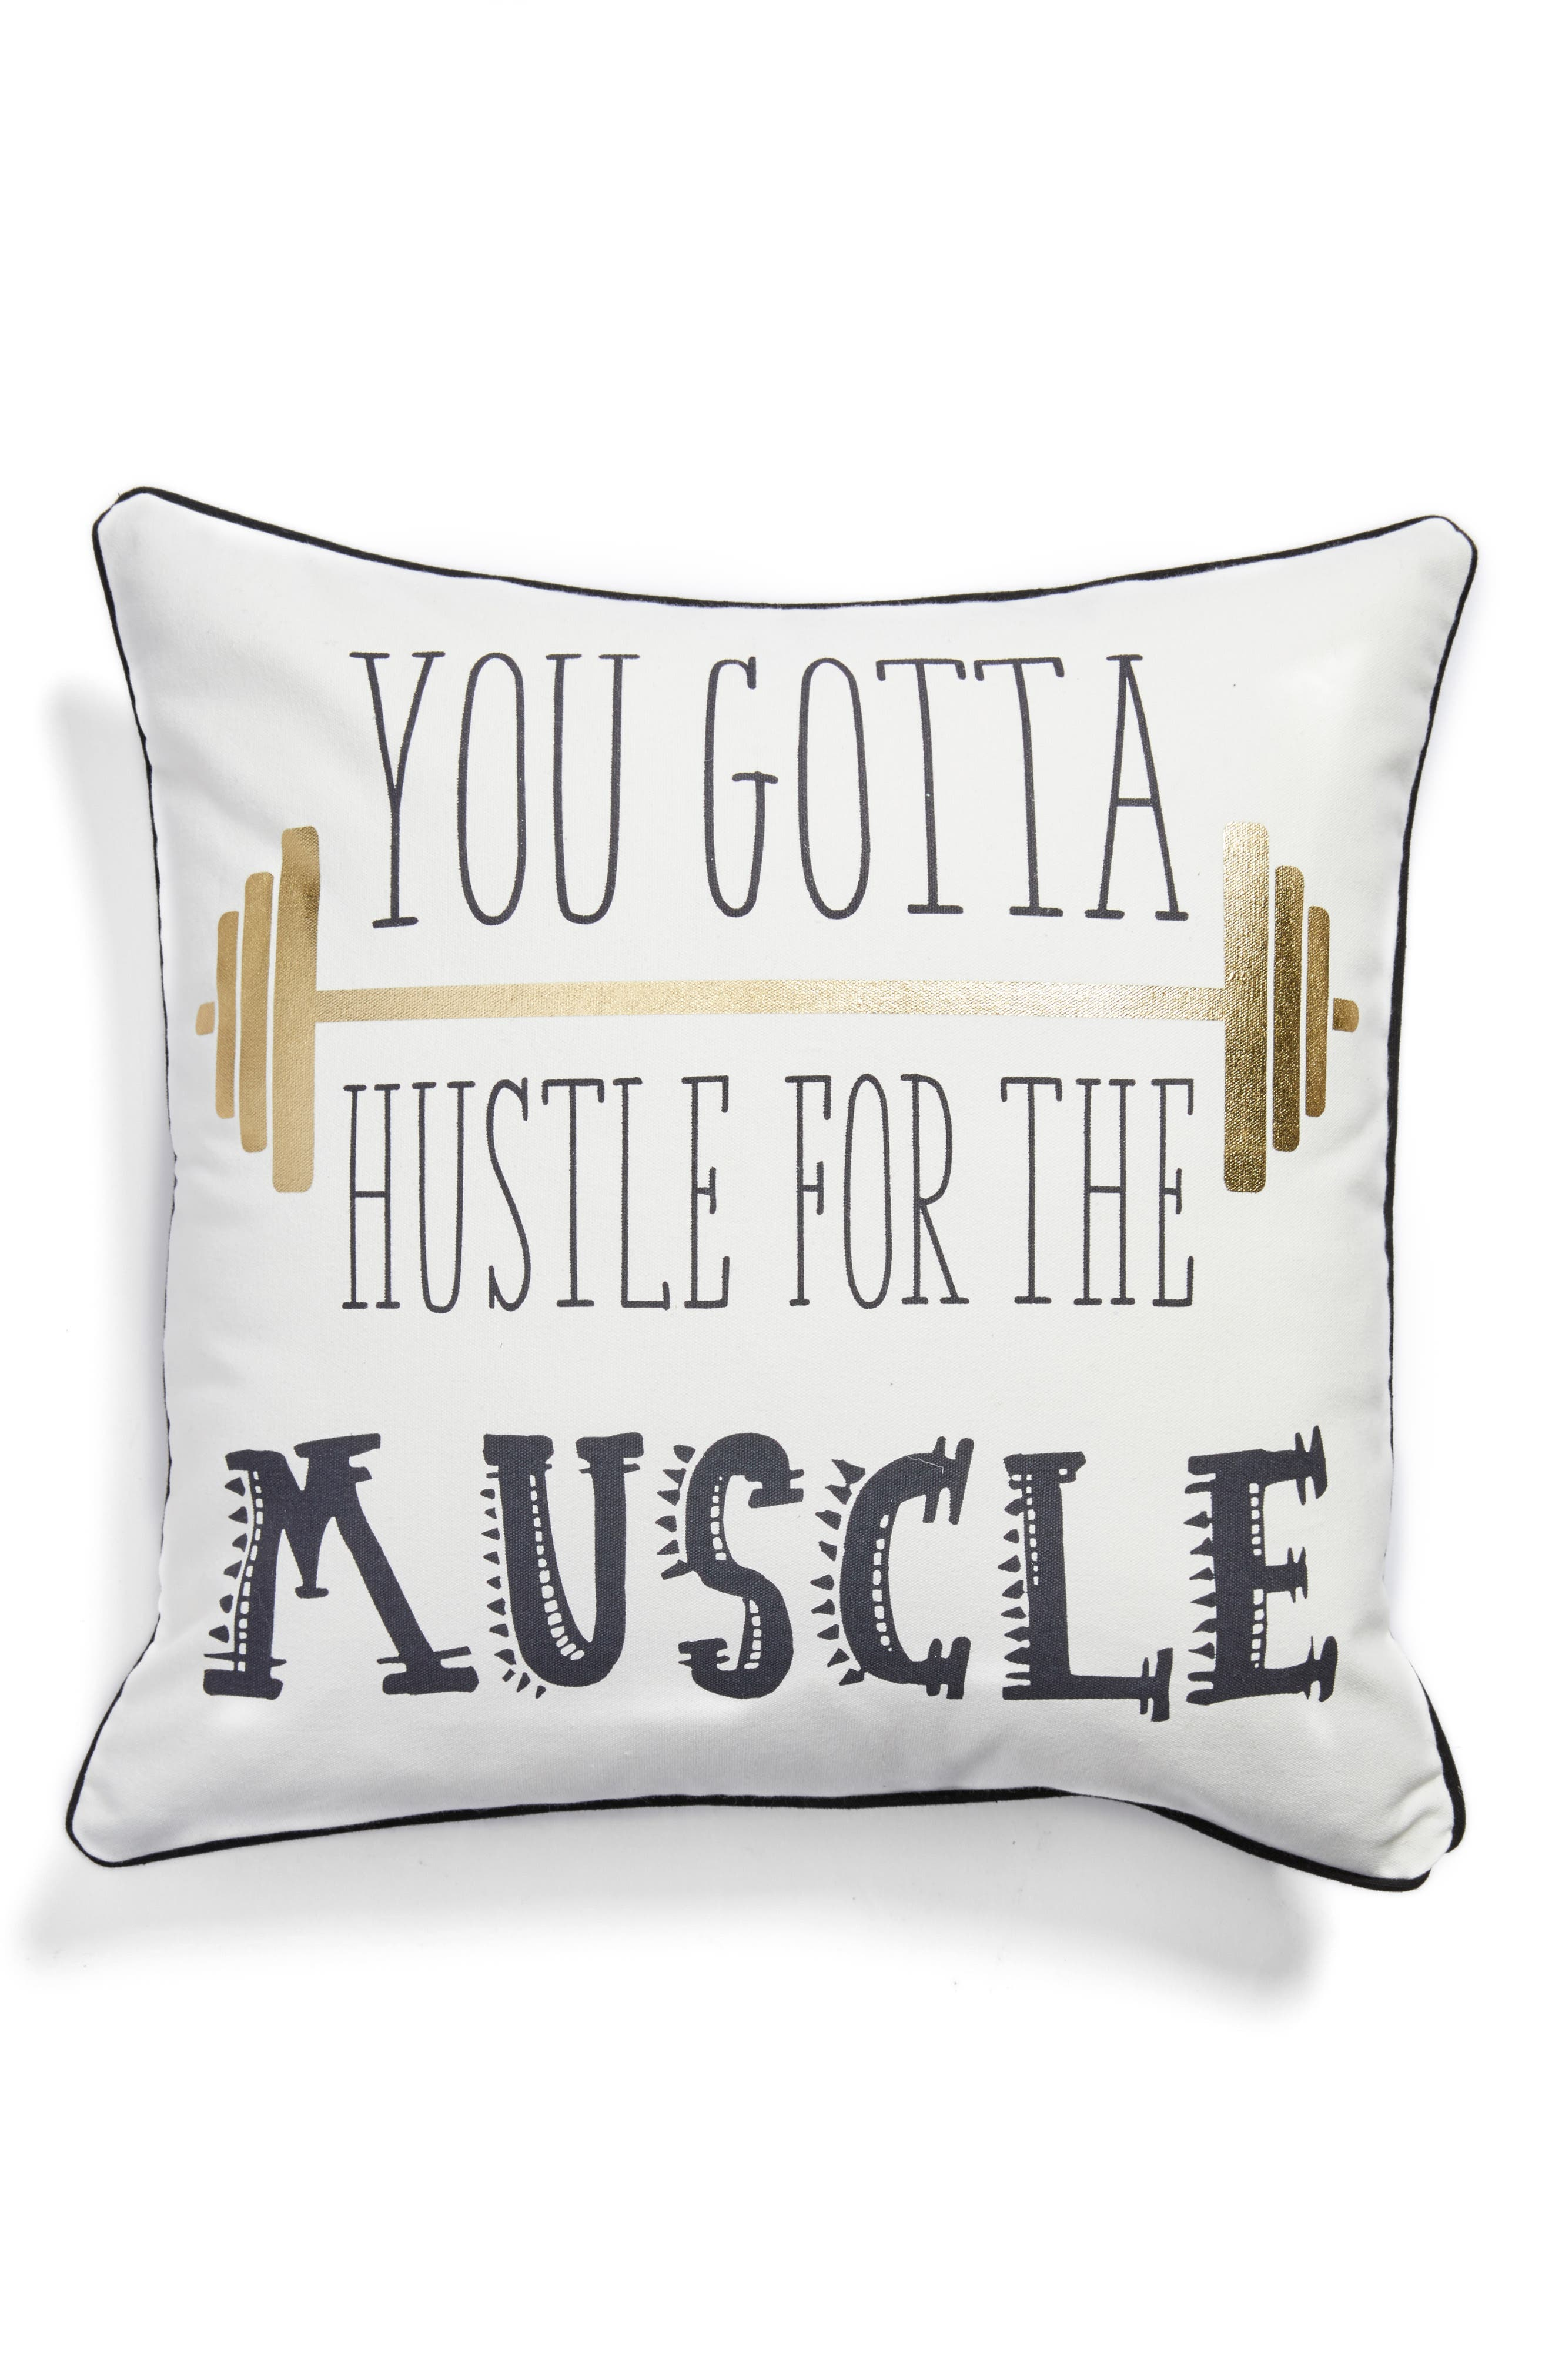 Alternate Image 1 Selected - Levtex Hustle for the Muscle Pillow